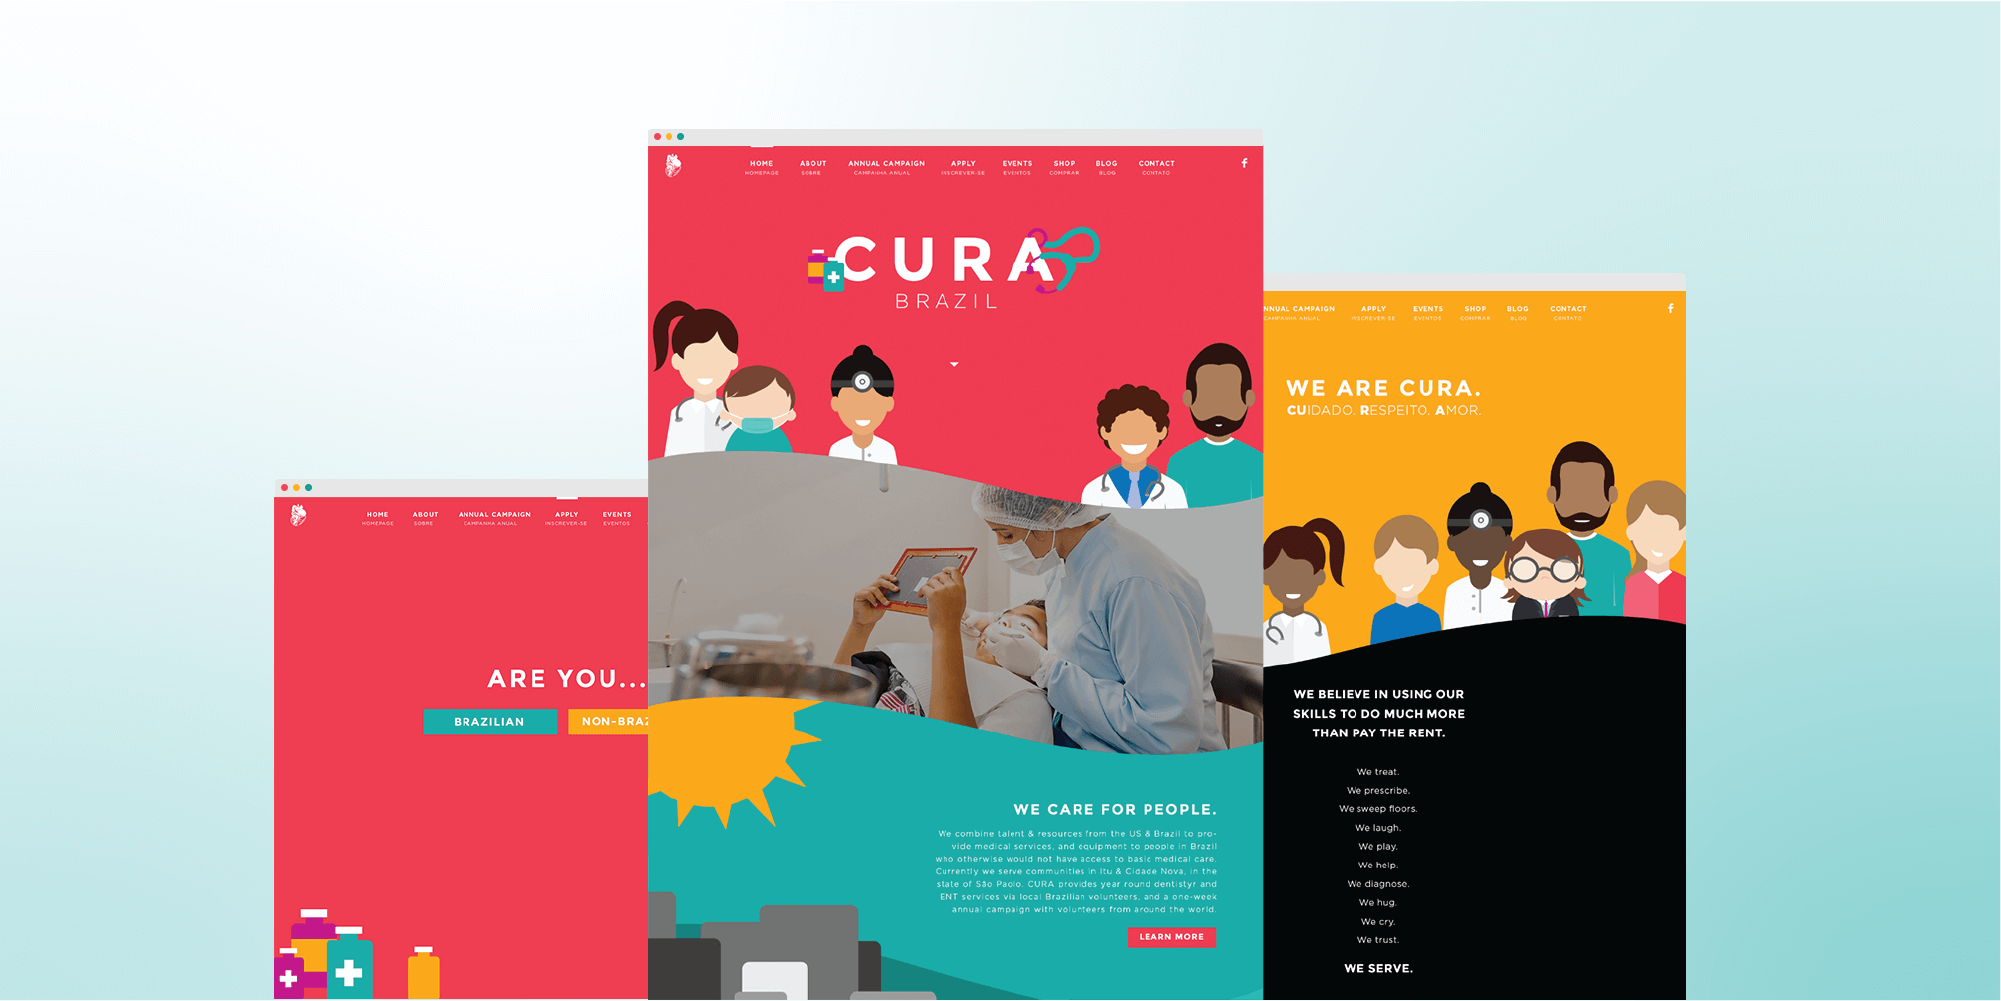 CURA Brazil website